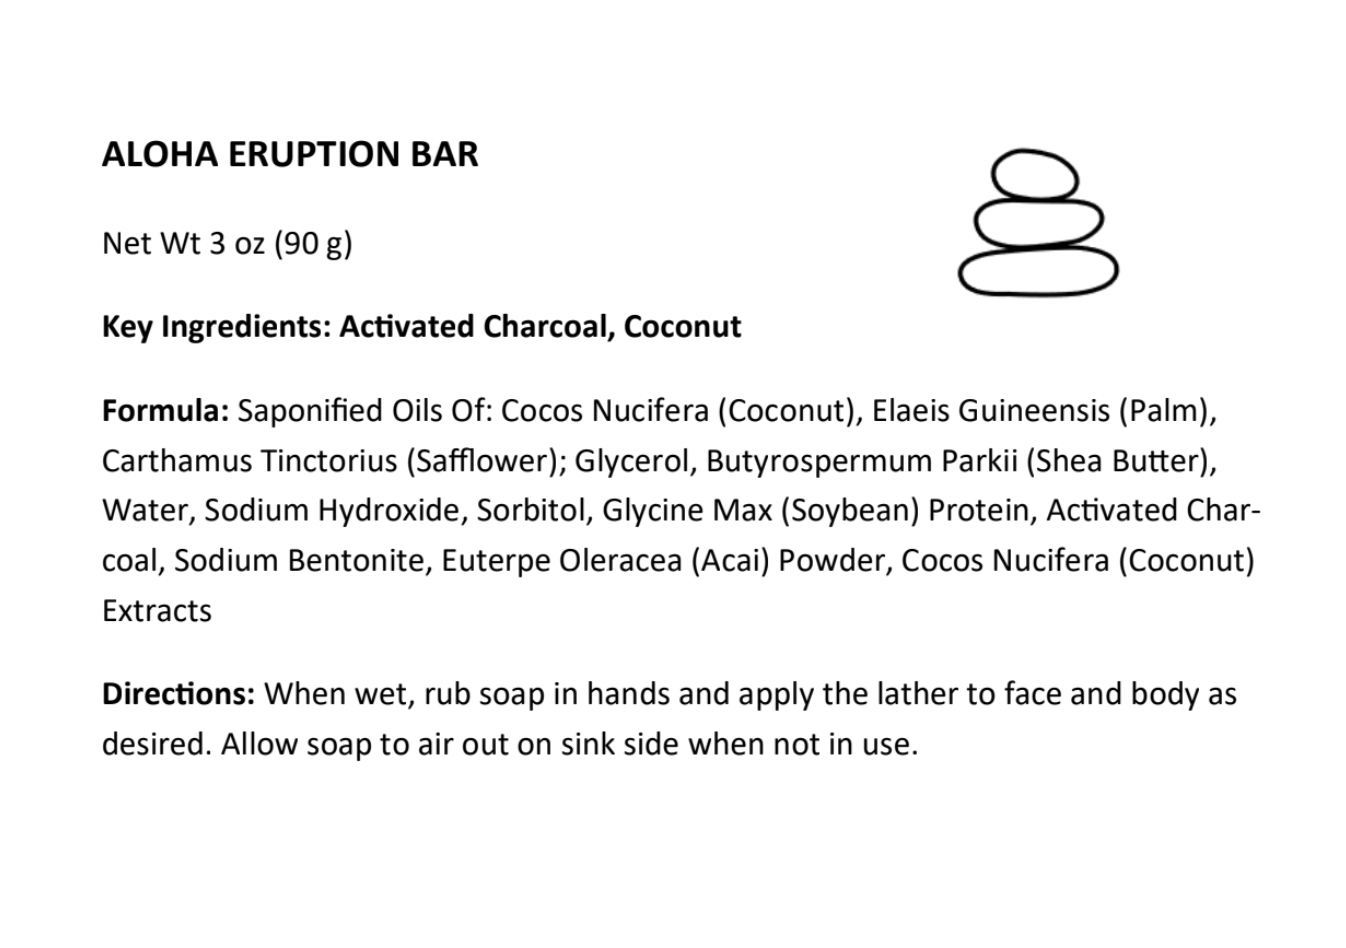 Aloha Eruption Bar